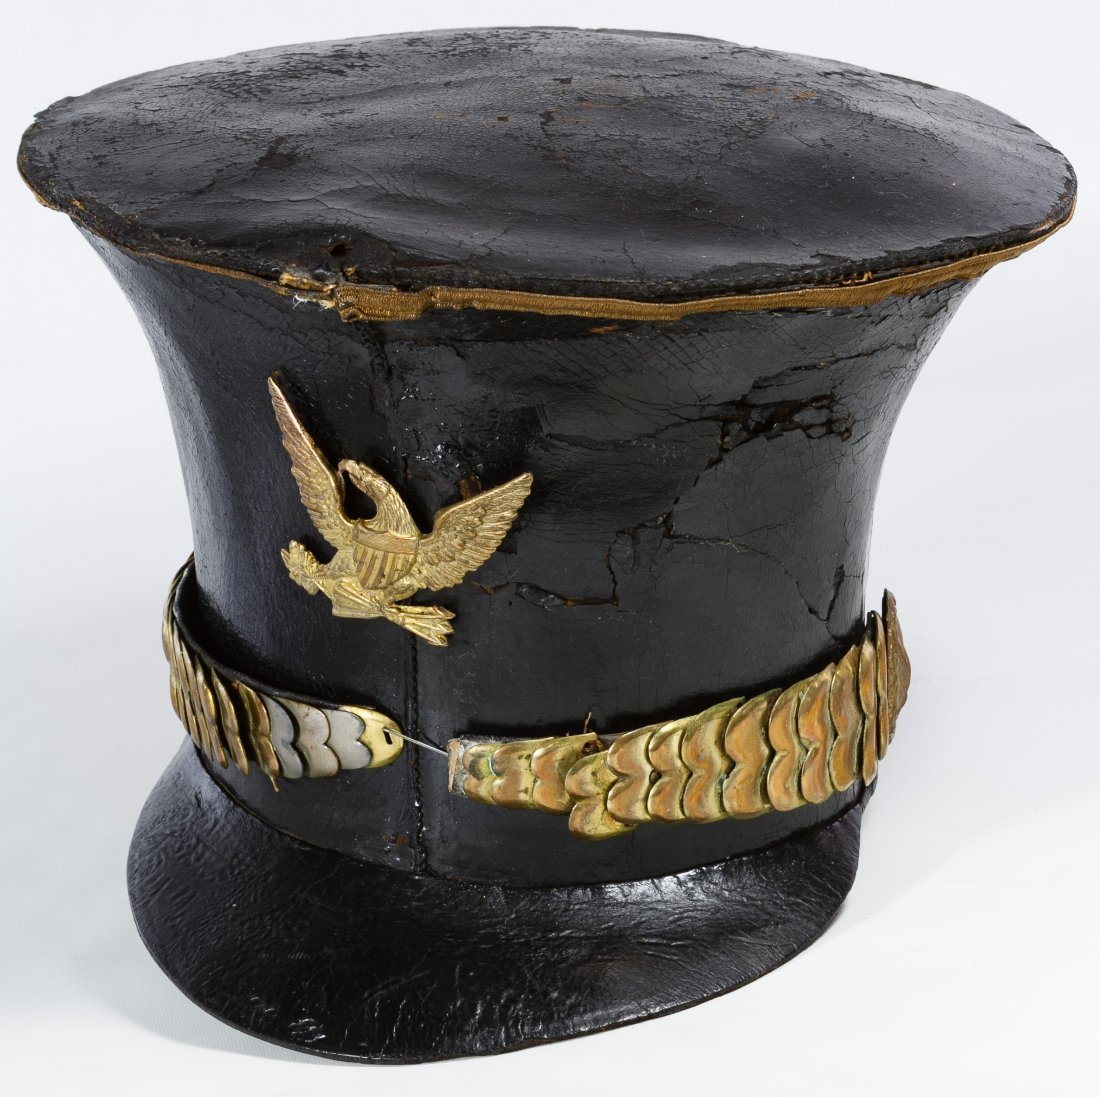 Pre-Civil War US Officer's Bell Crown Shako Hat